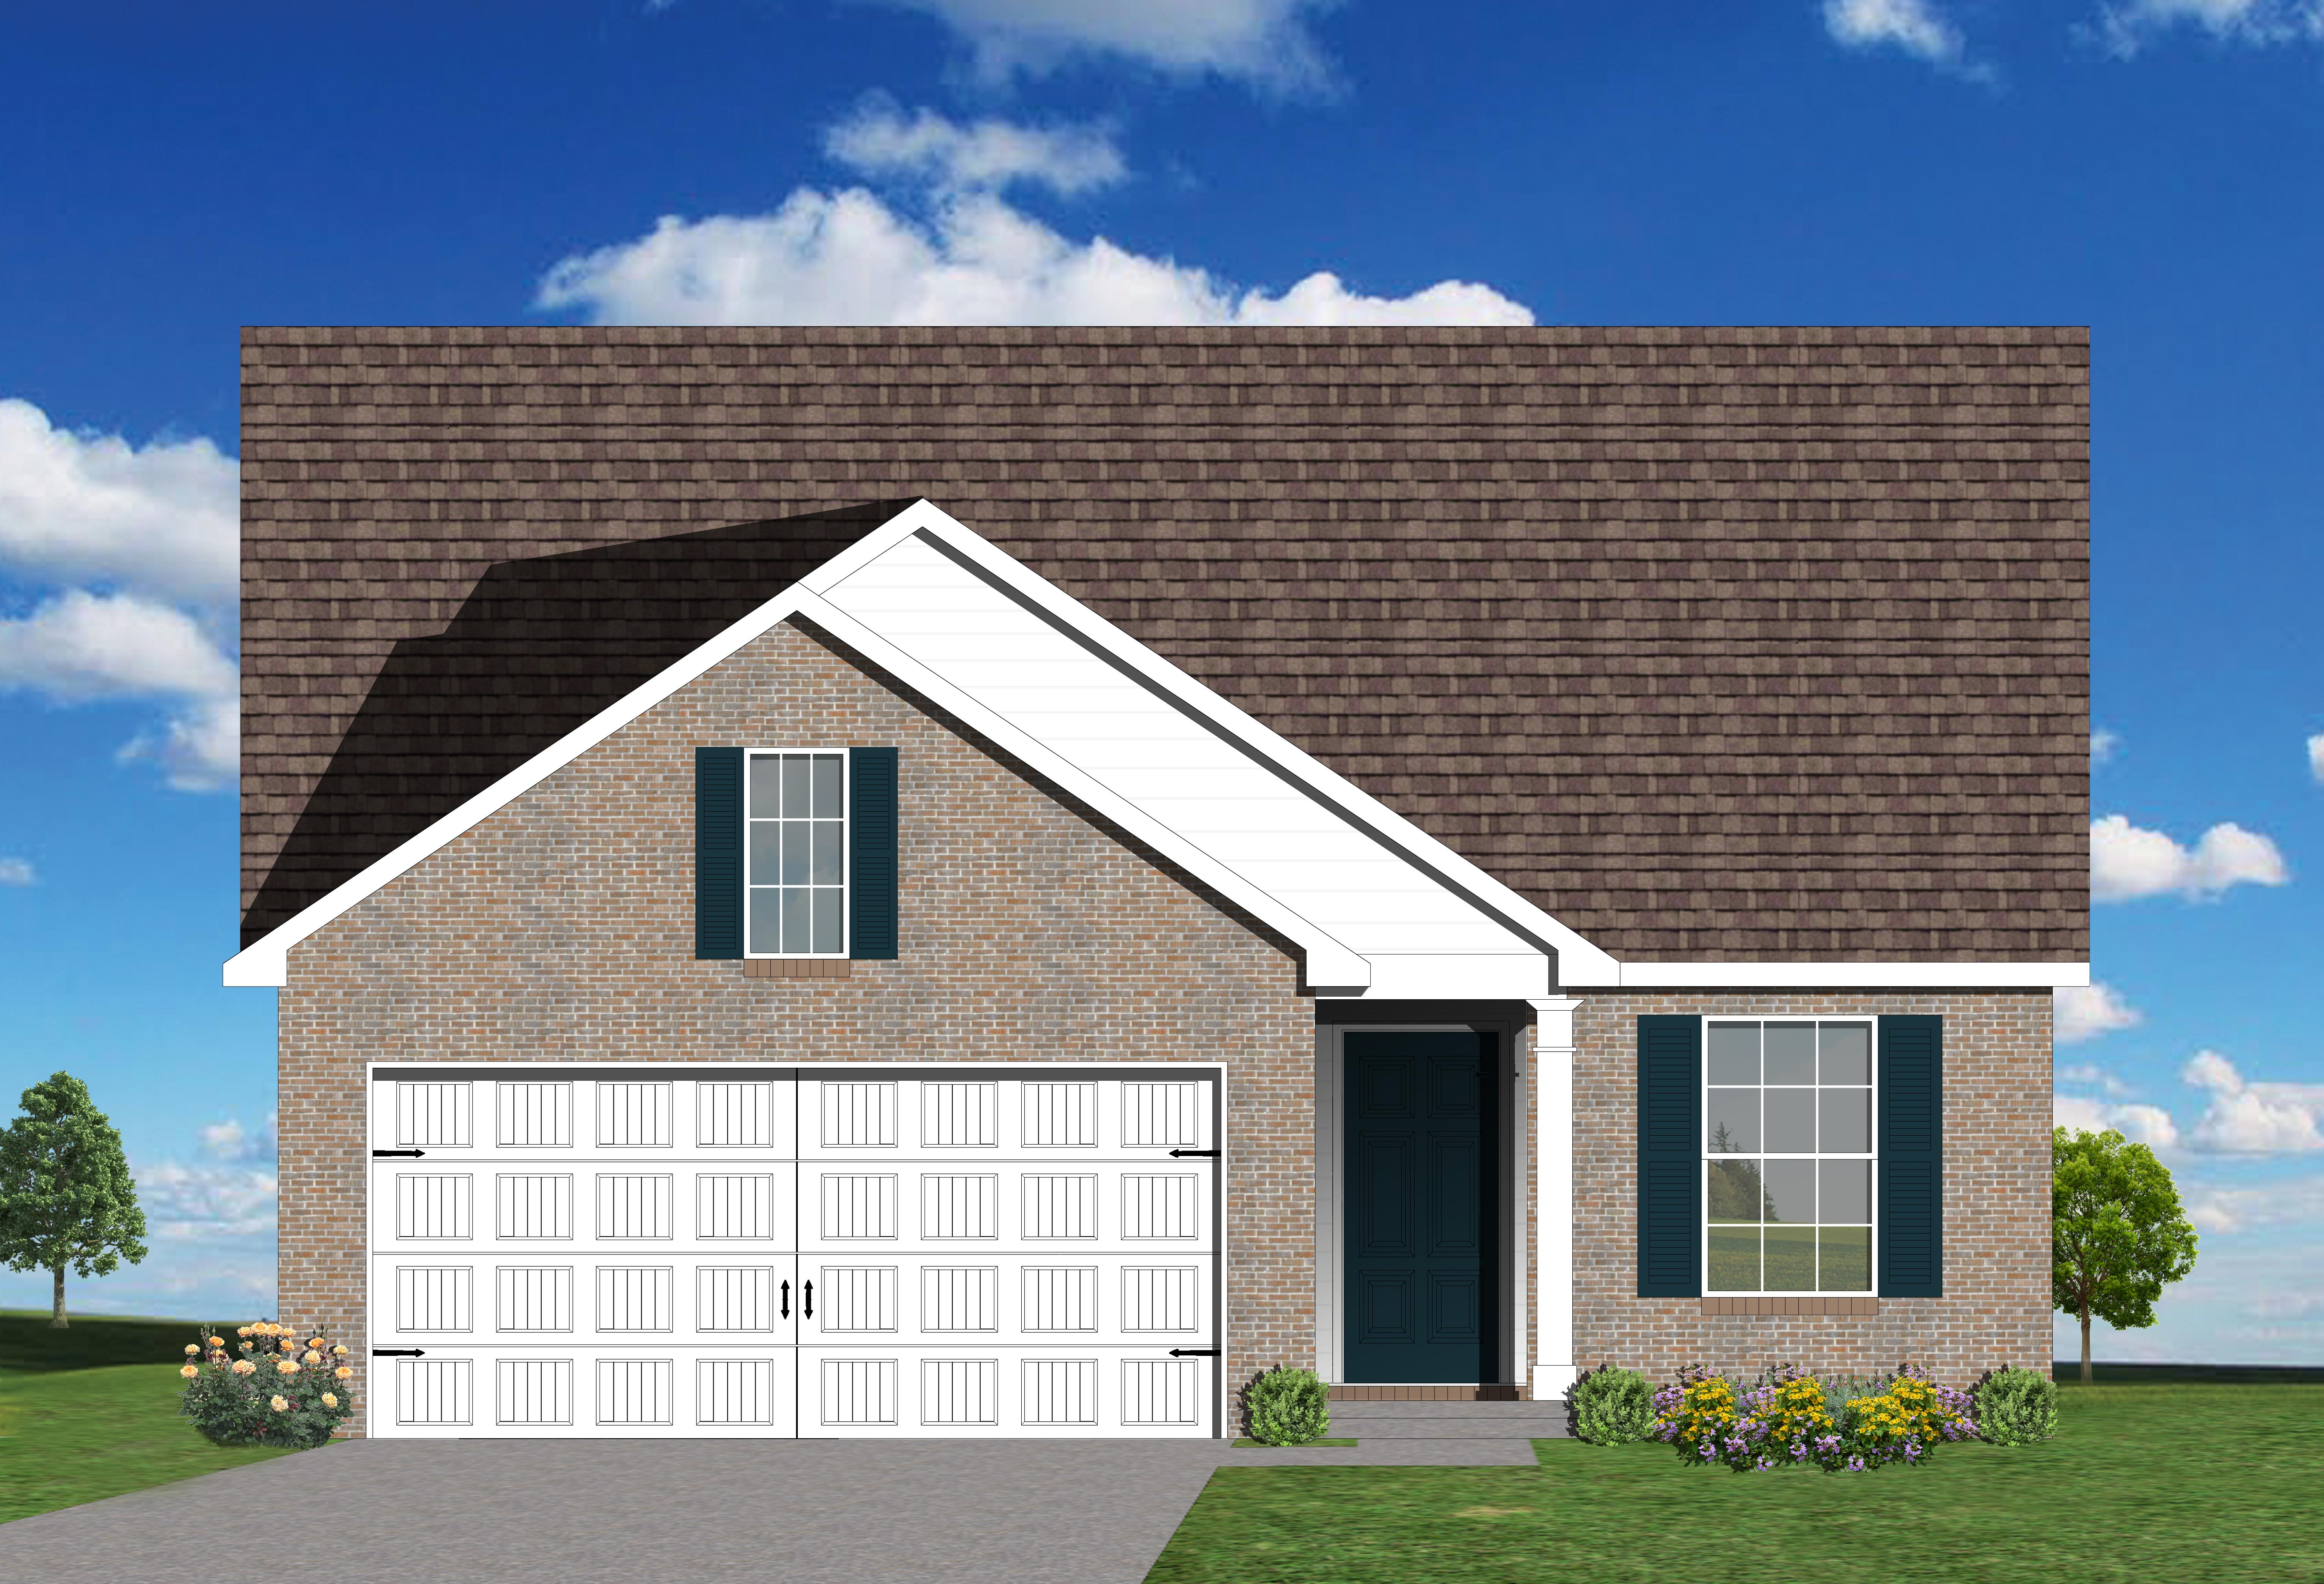 Floor Plans Halley Kentucky Real Estate For Sale